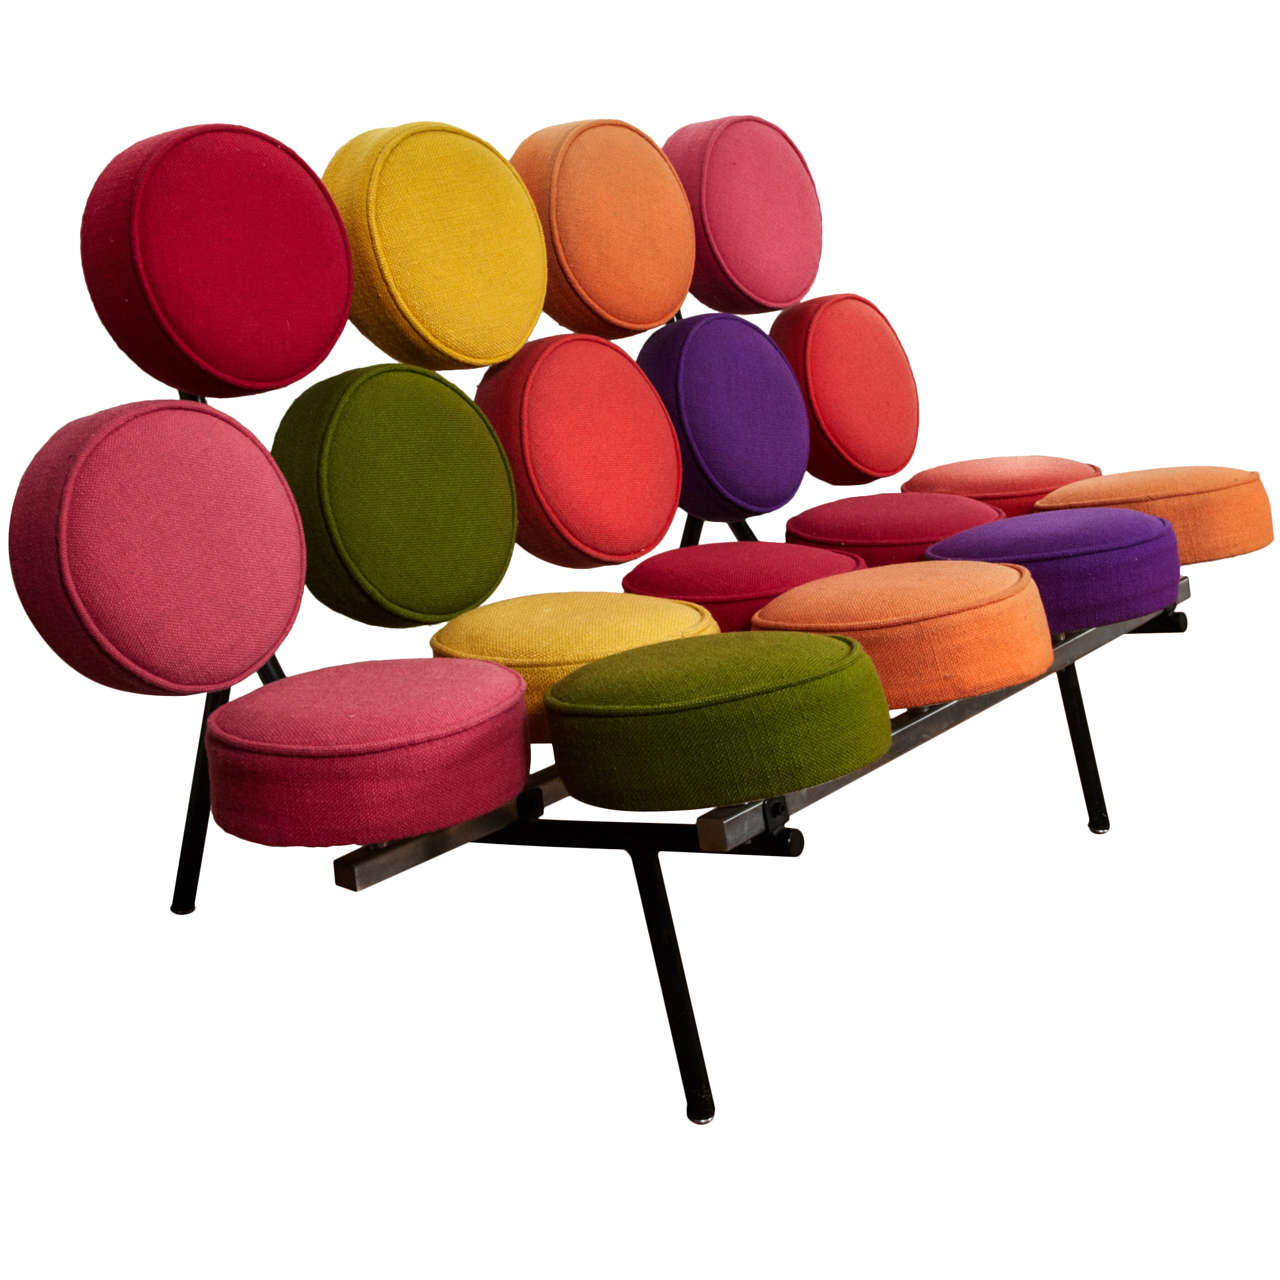 """""""Marshmallow"""" sofa by George Nelson, 1958. 1"""